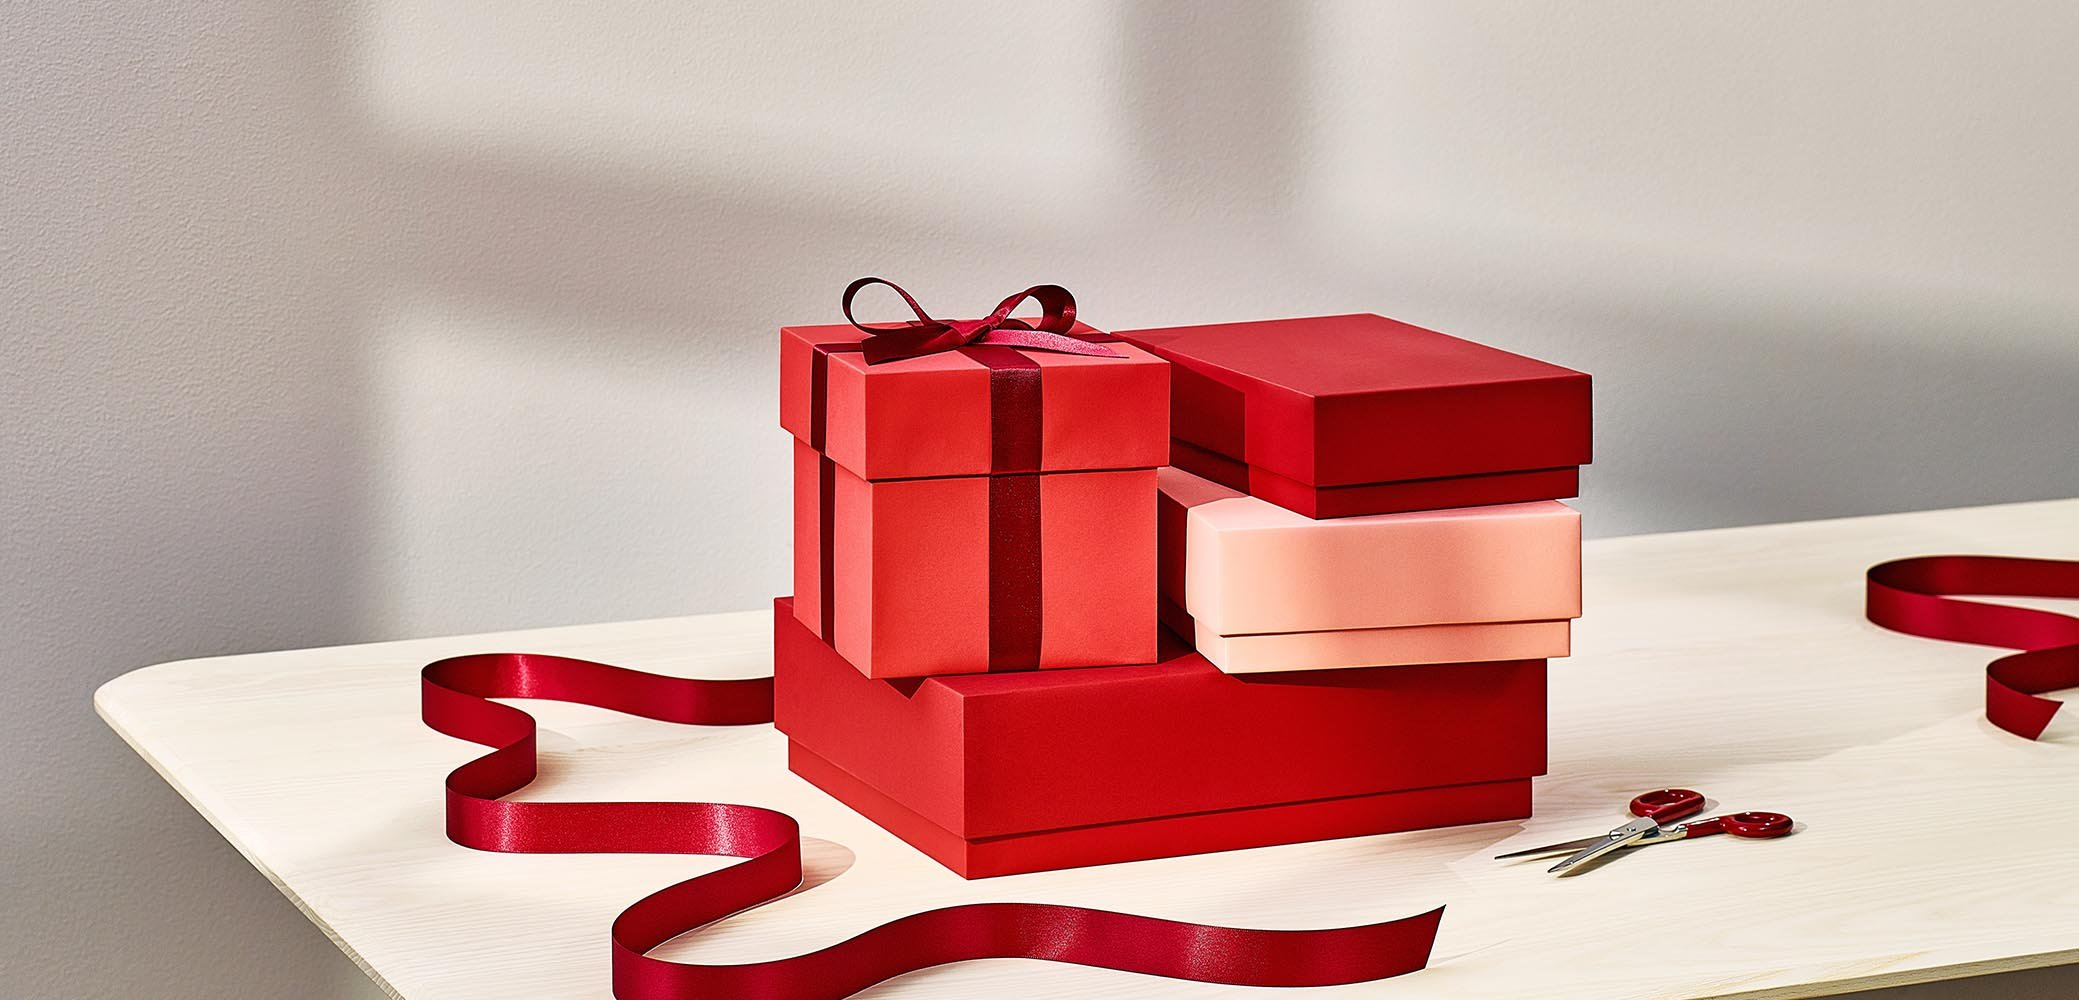 Gifts from £25 - £50